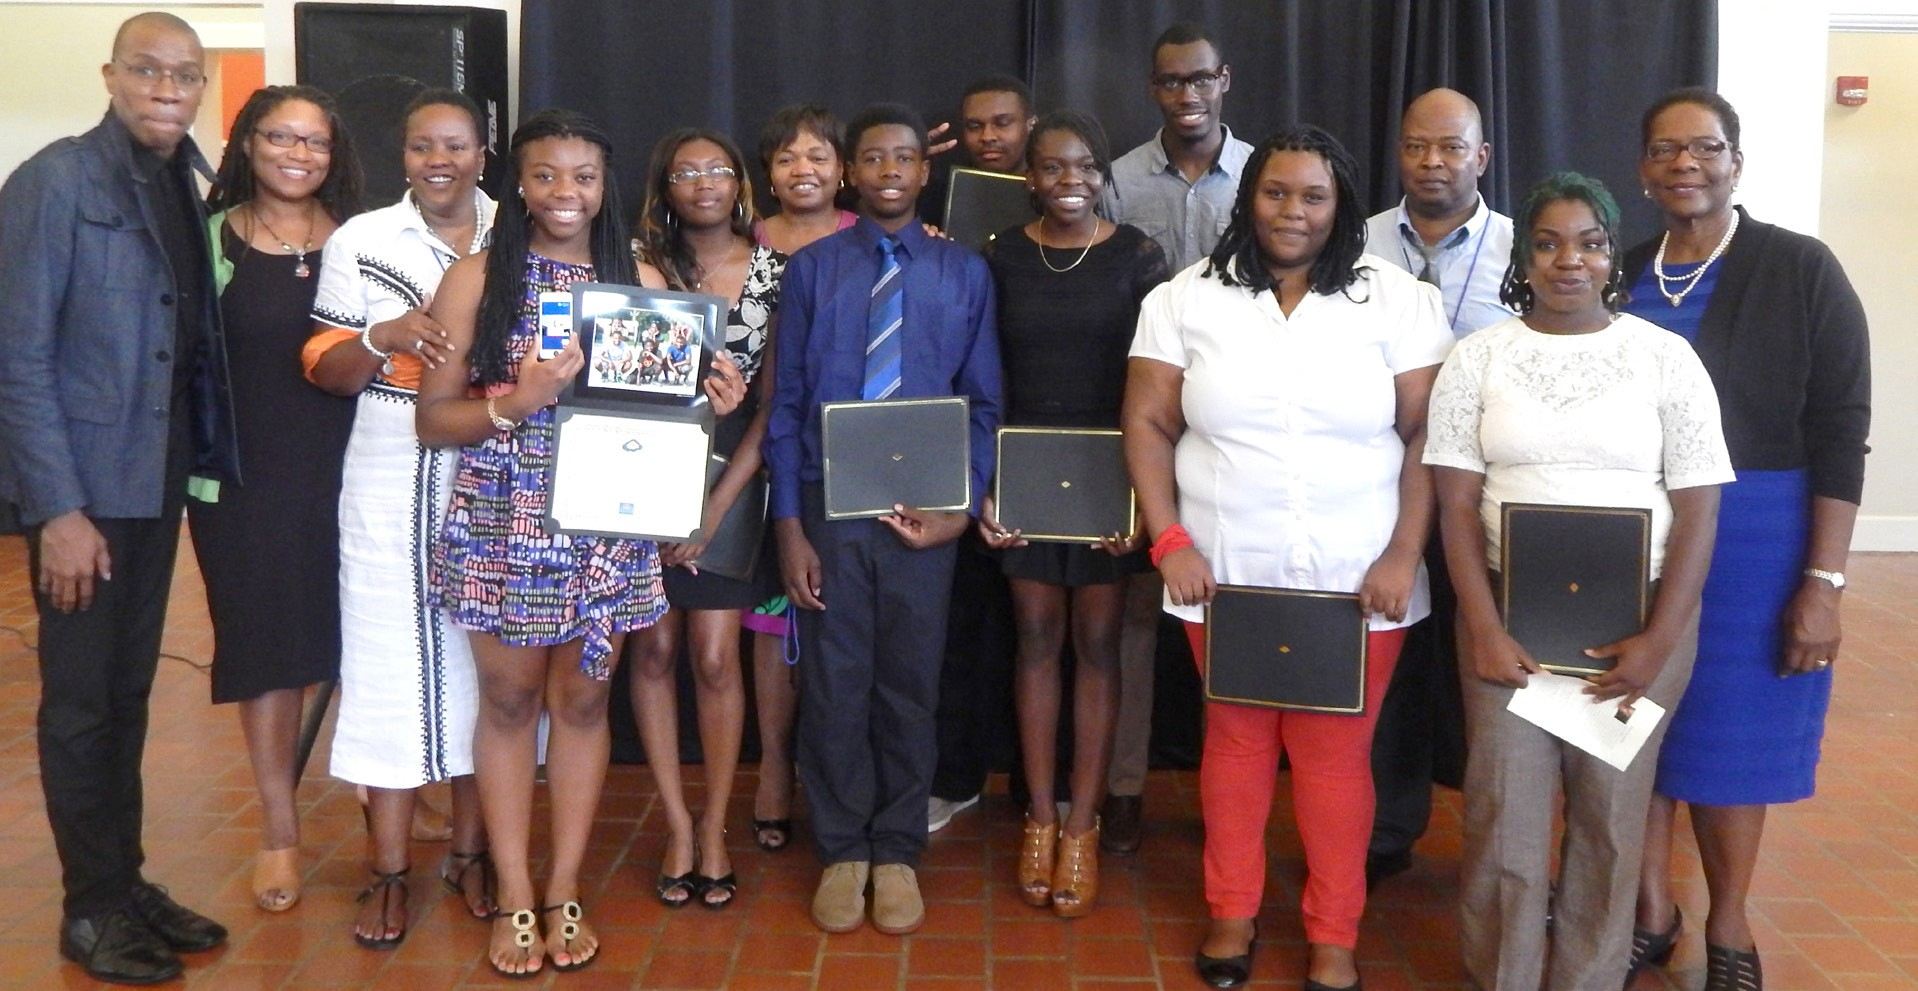 Photo: SSU Media High Professionals, Student Assistants; and participating students Guest Speaker, Patrick Riley far left and Dr. Wanda Lloyd, Chairperson, SSU Mass Communications Dept.